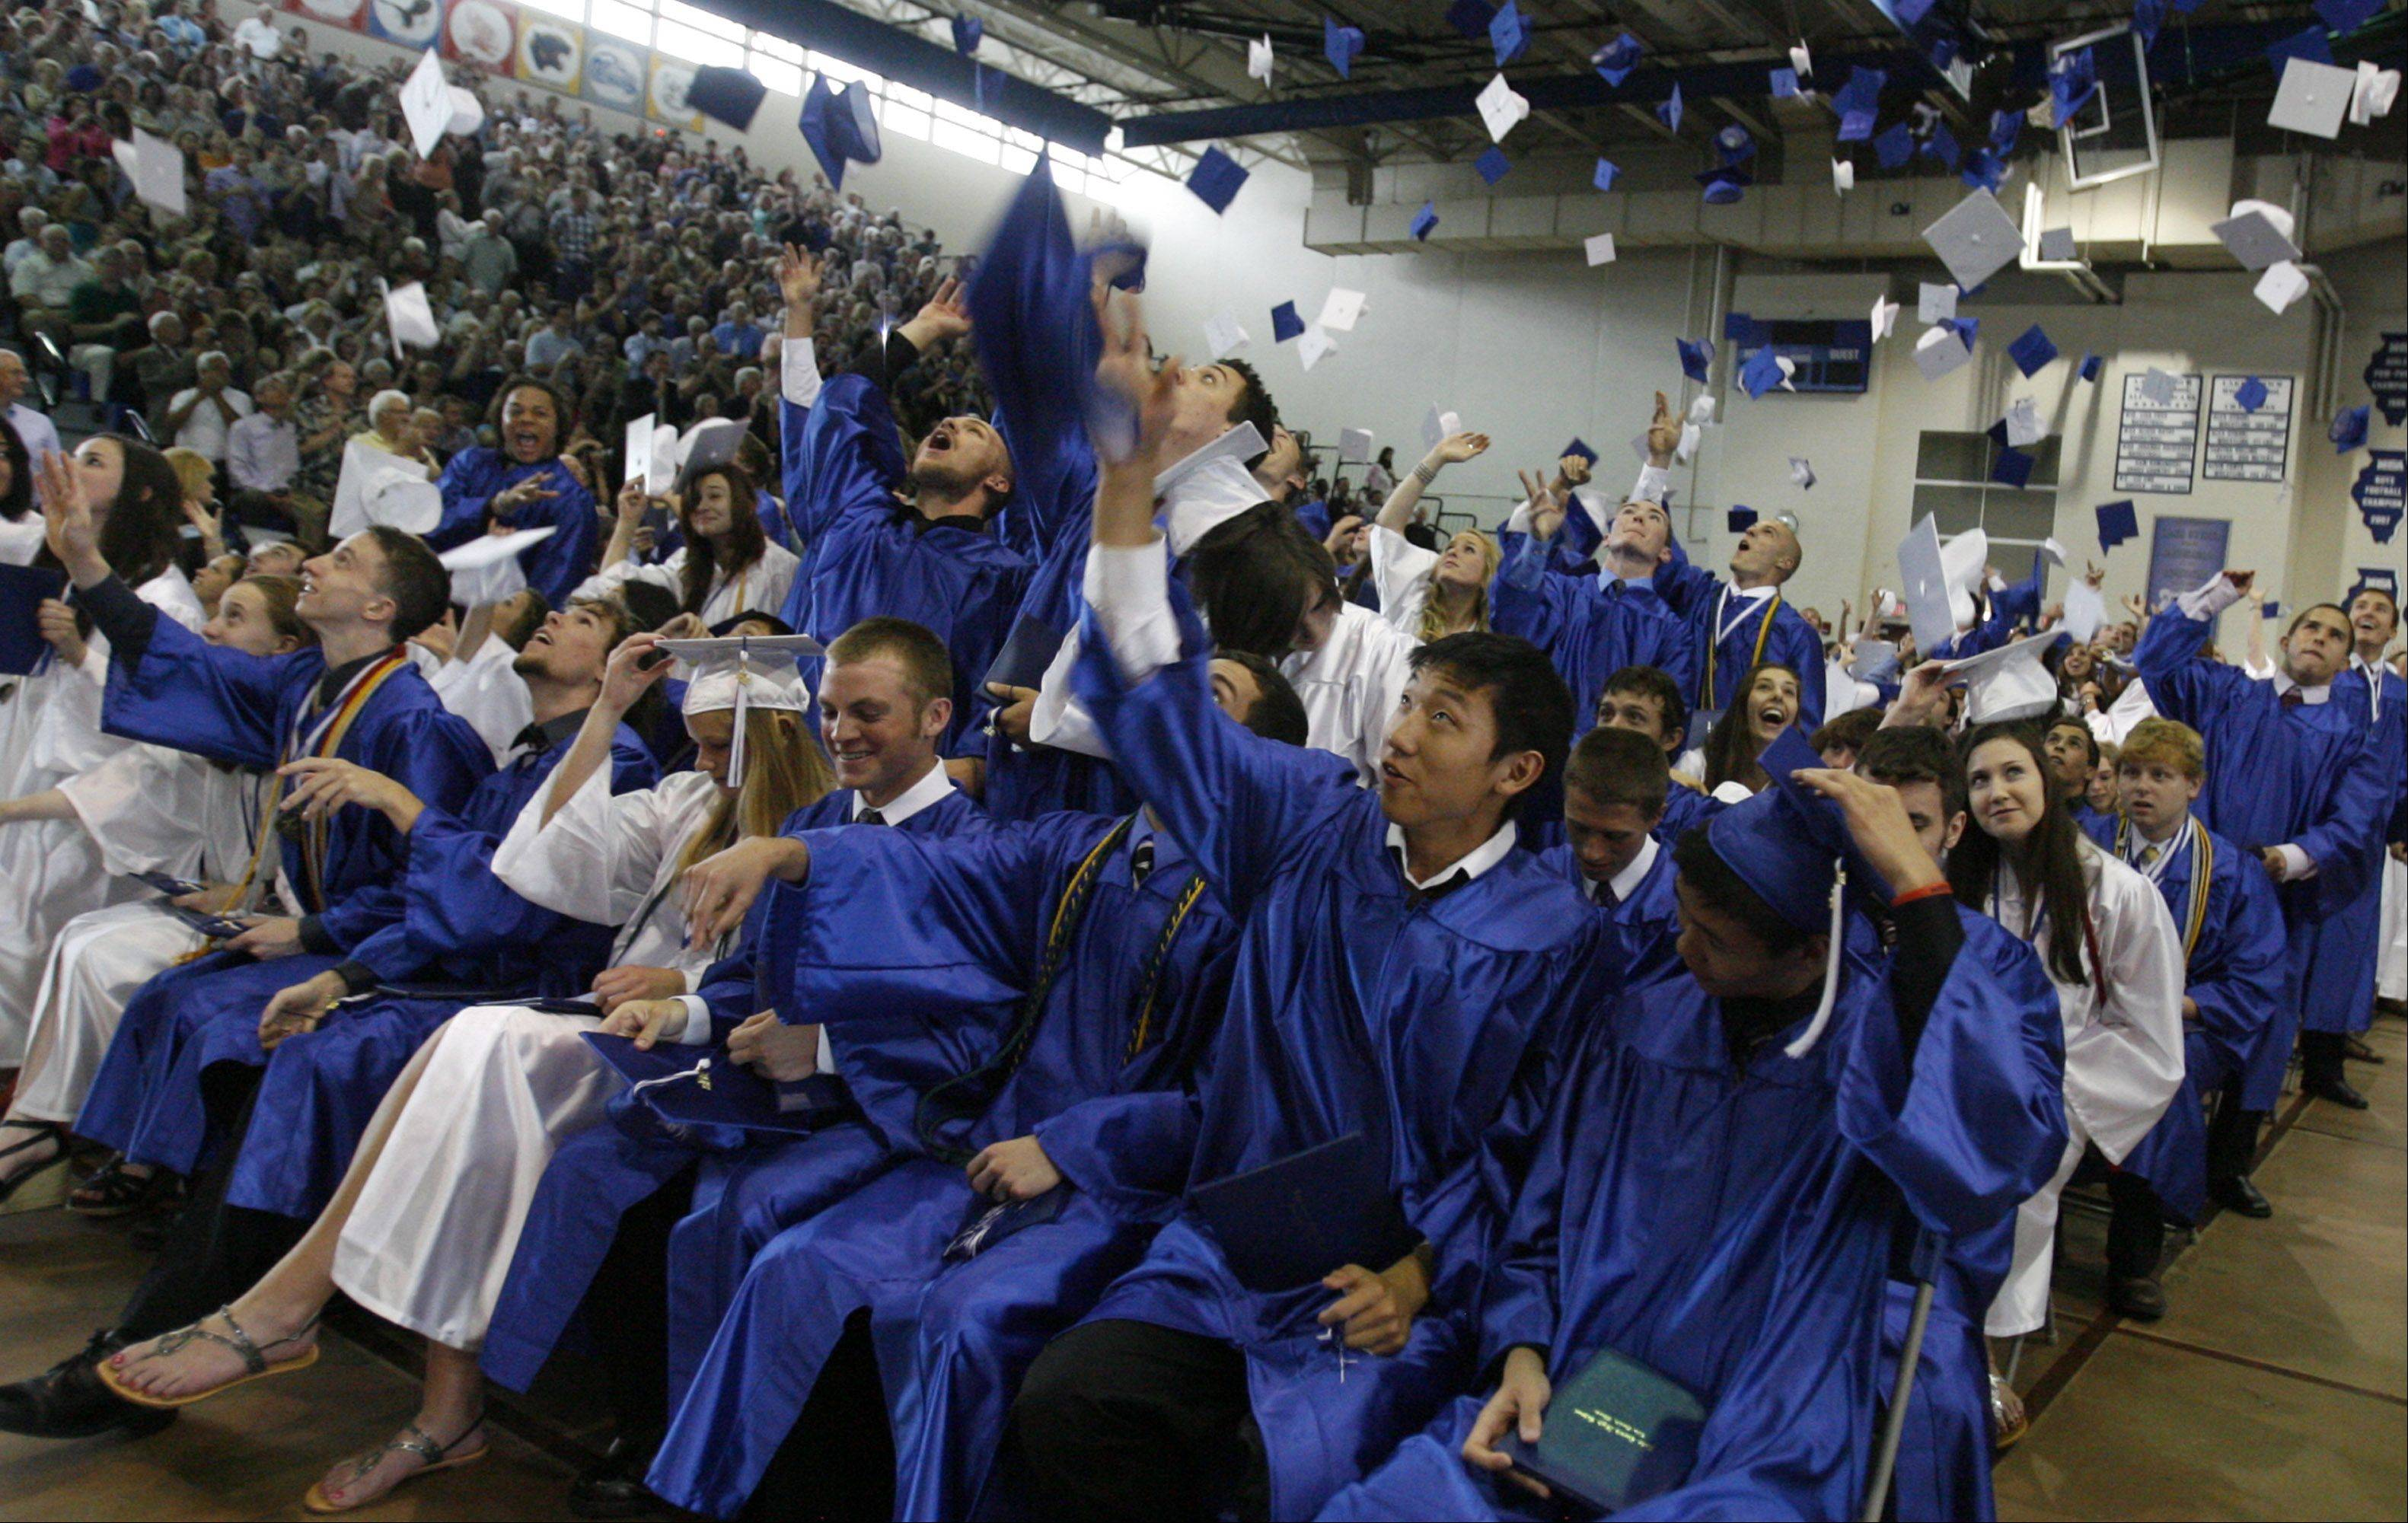 Lake Zurich High School graduates toss their caps at the end of their ceremony on Saturday, May 26.